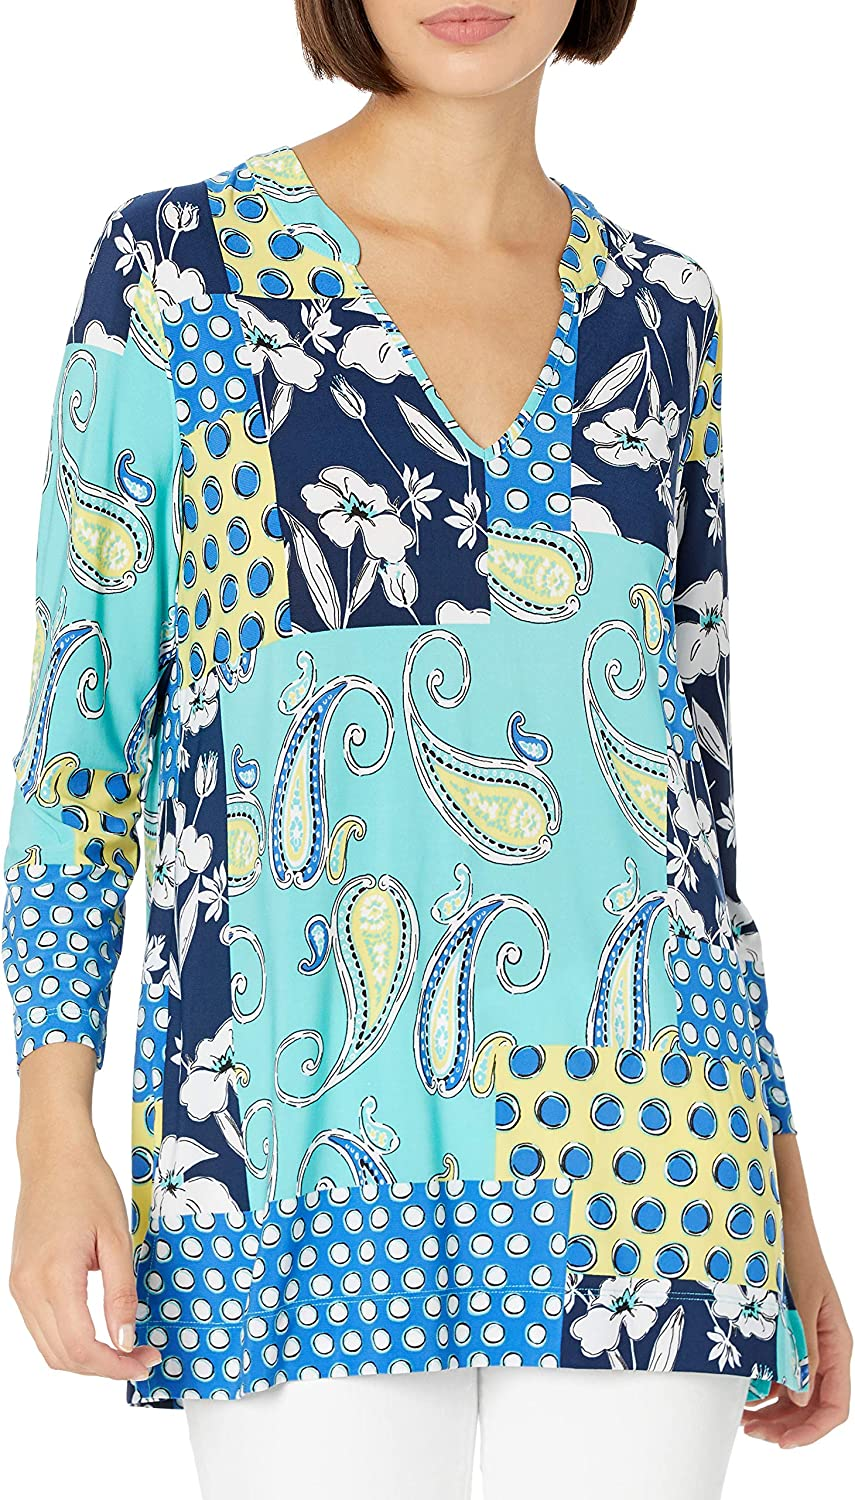 25% OFF New life Pappagallo Women's Top Tunic